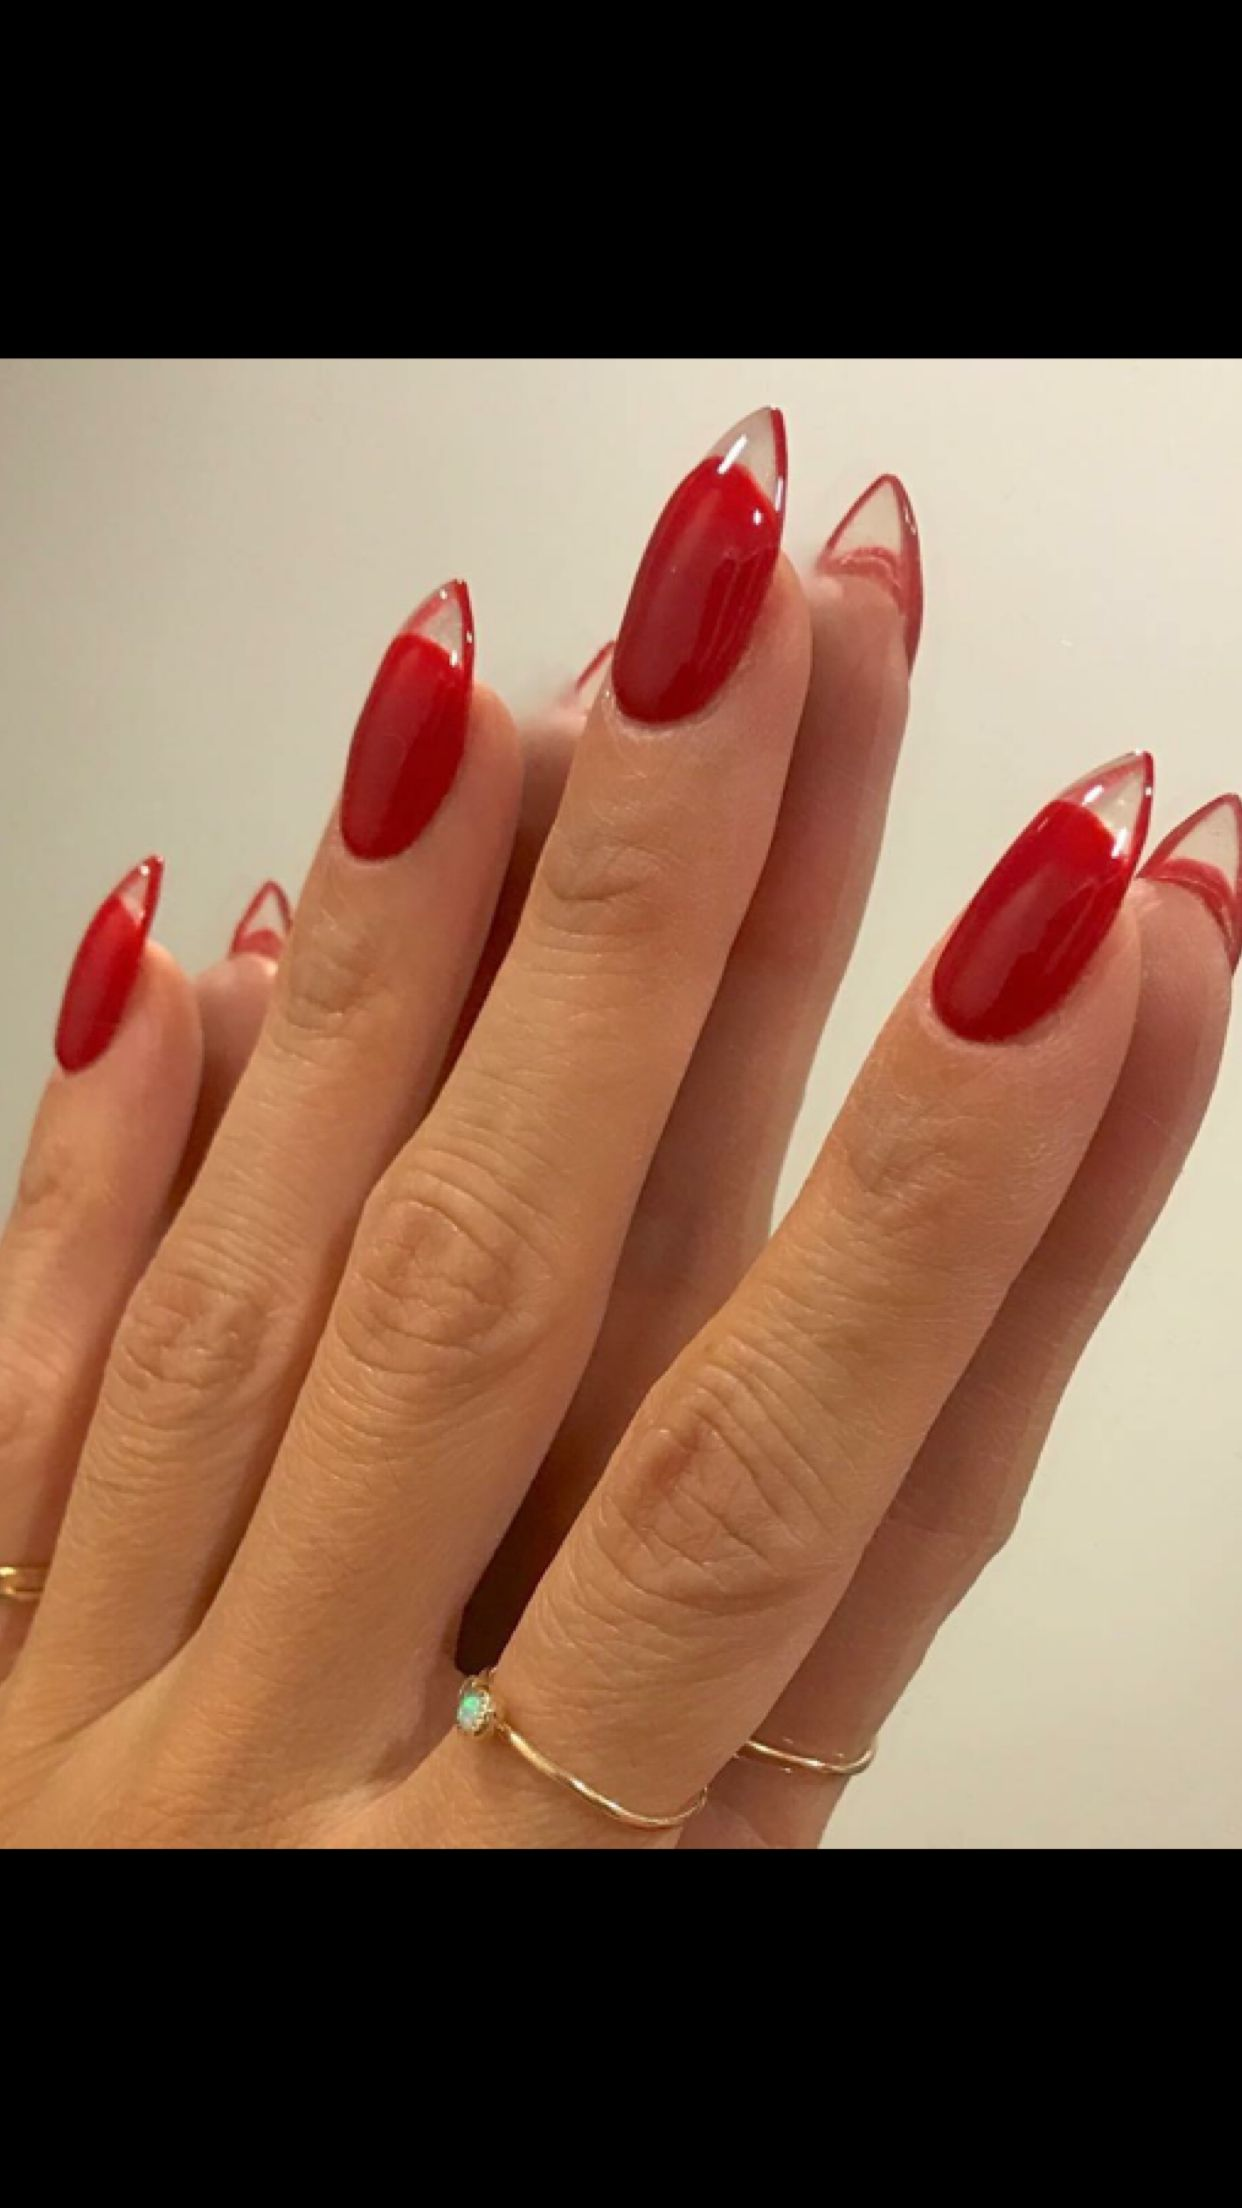 Red Gel Nails With Clear Tip Red Gel Nails Clear Nail Tips Red Acrylic Nails